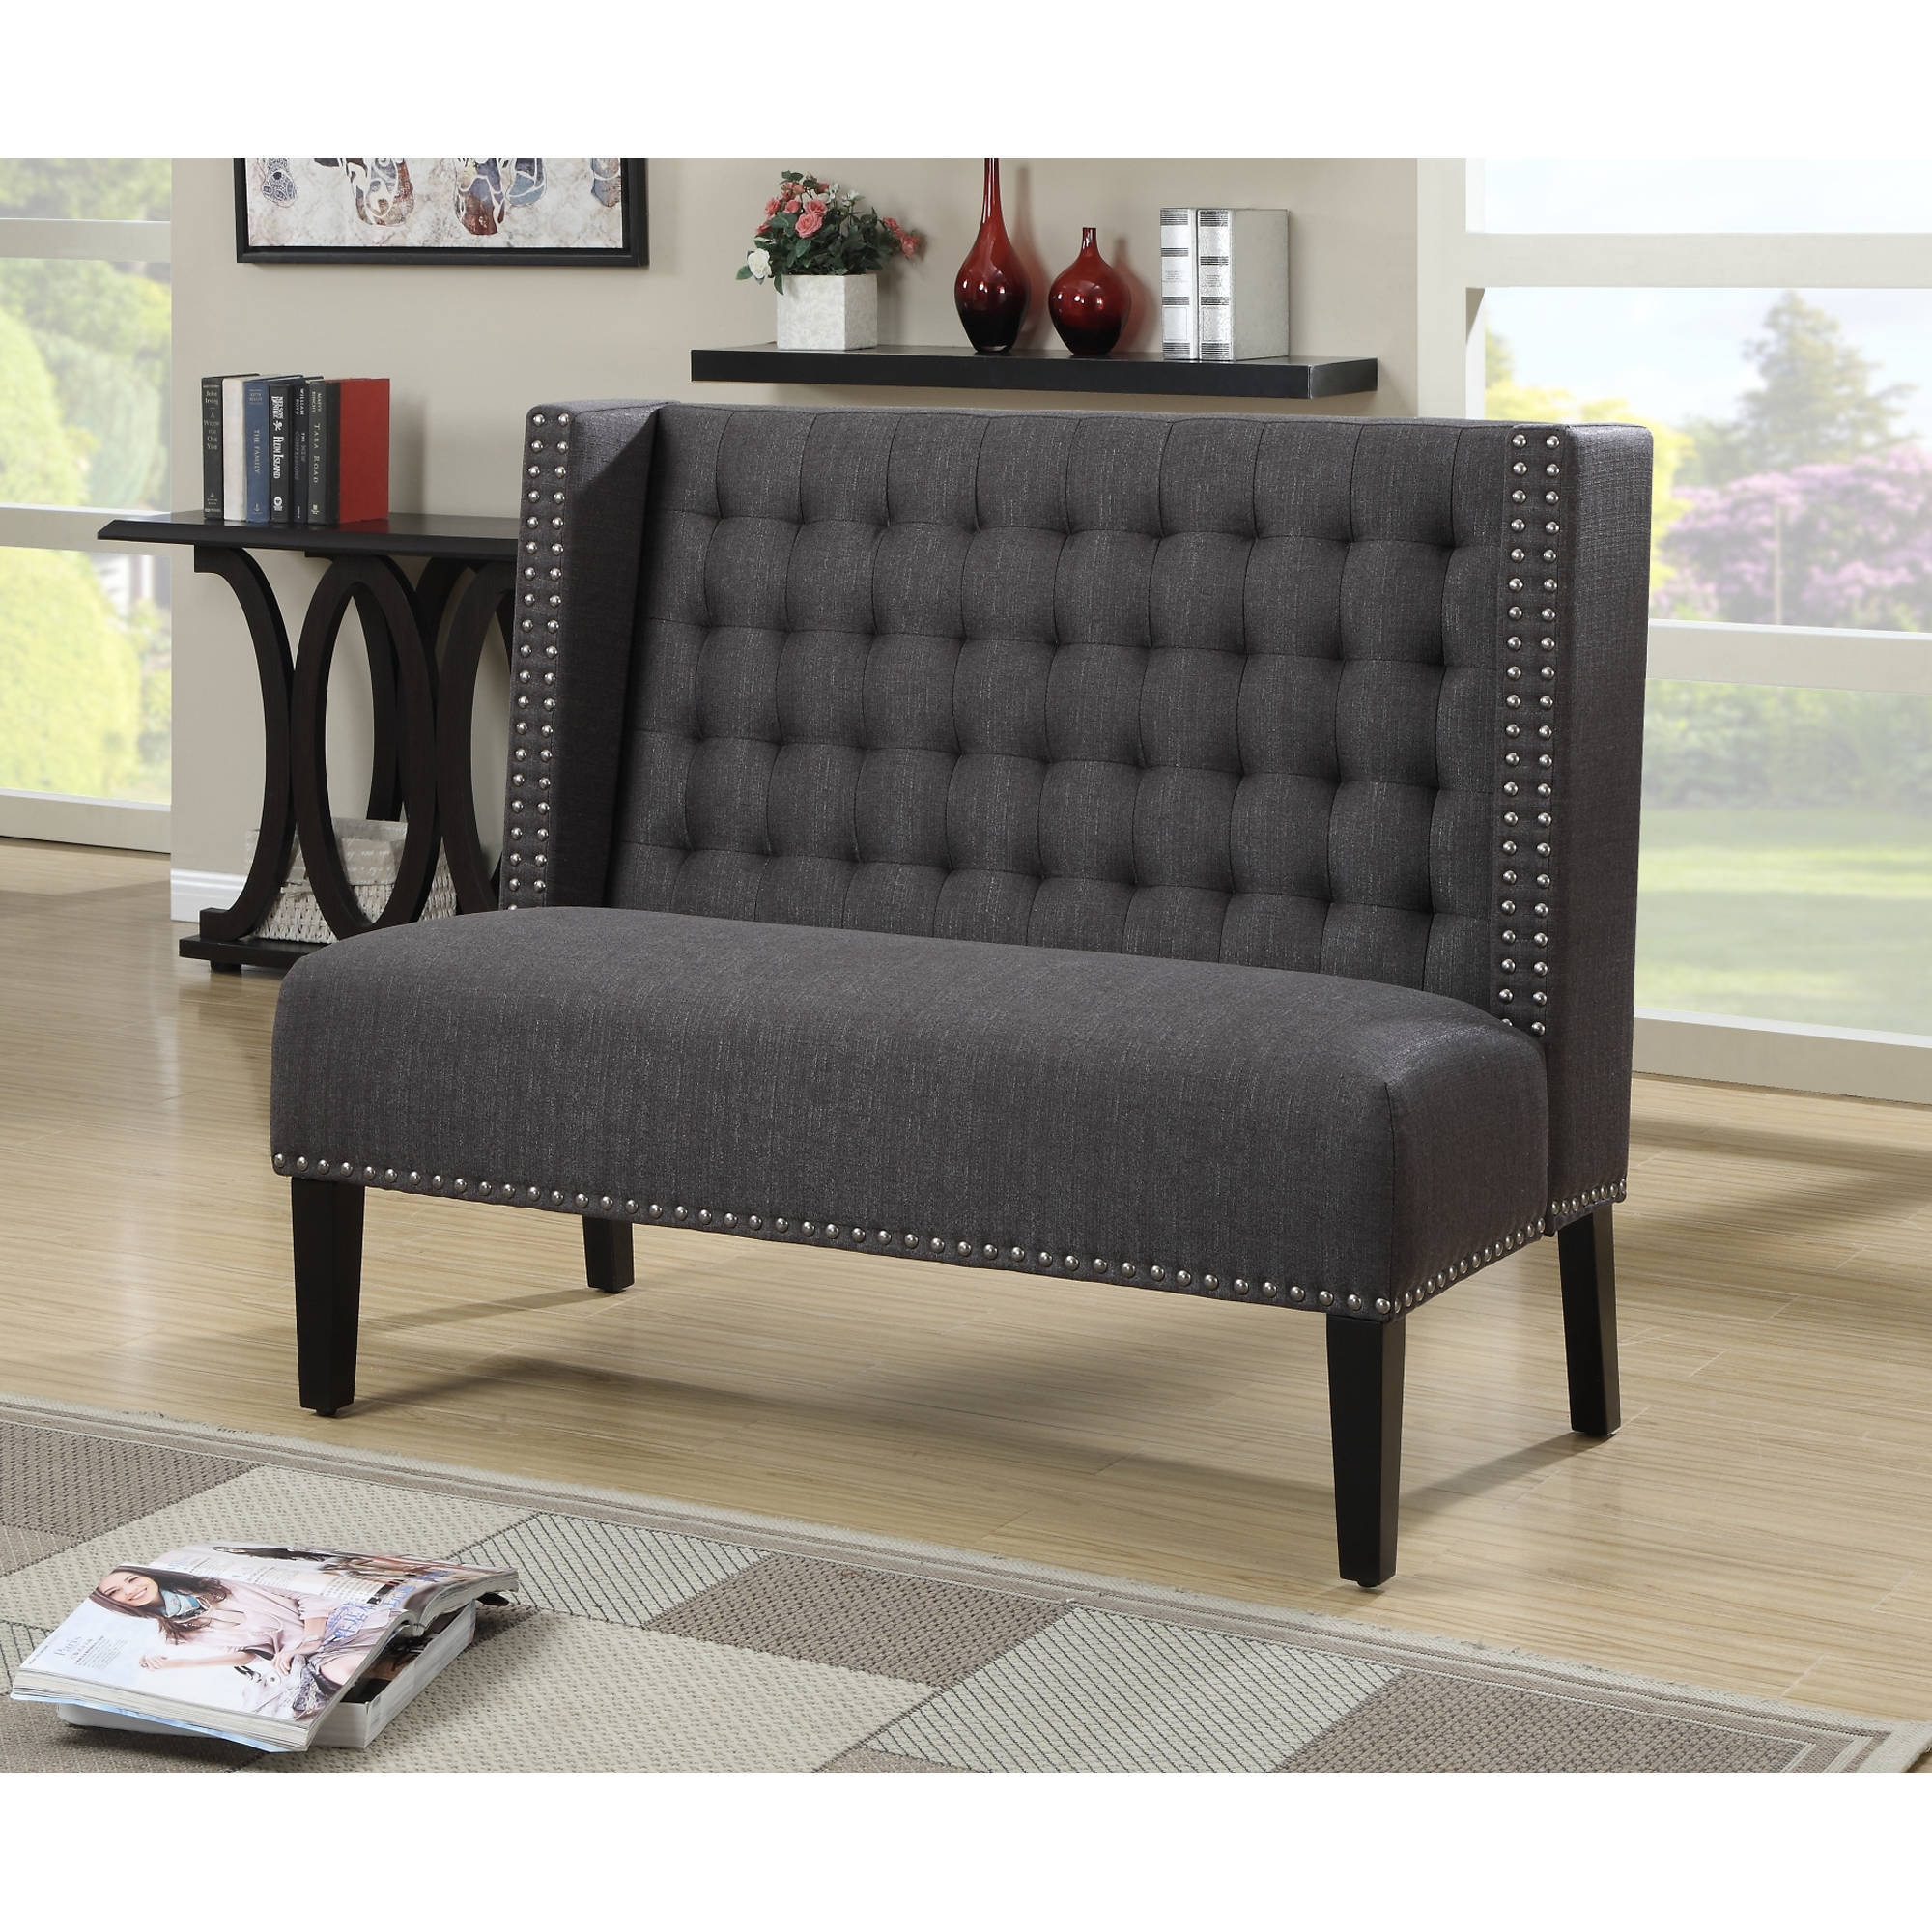 Home Meridian Banquette Bench